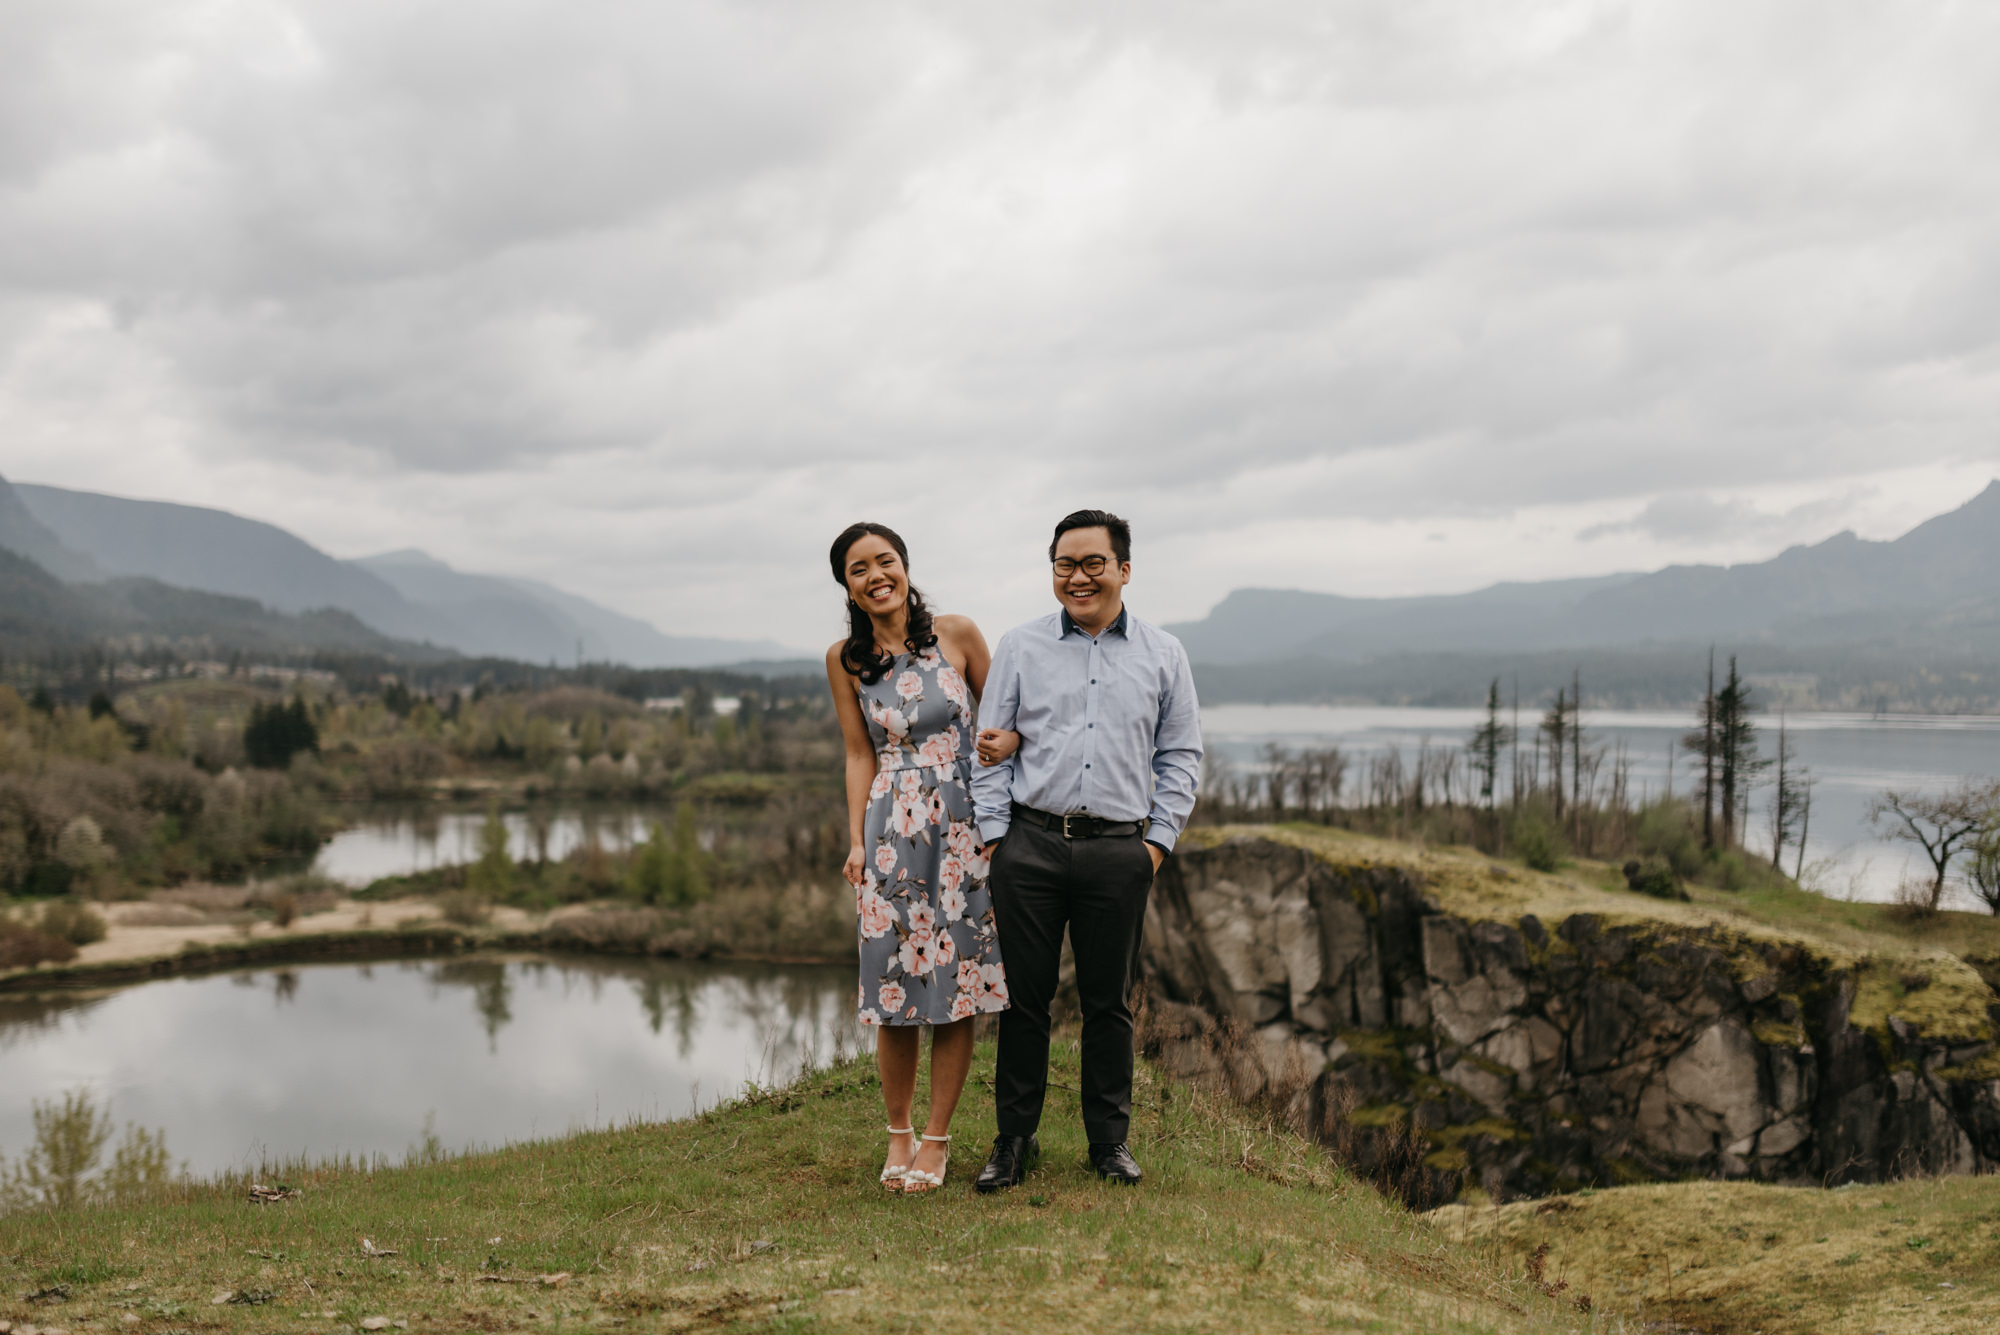 cascade-locks-engagement-session-cloudy-fun-4326.jpg